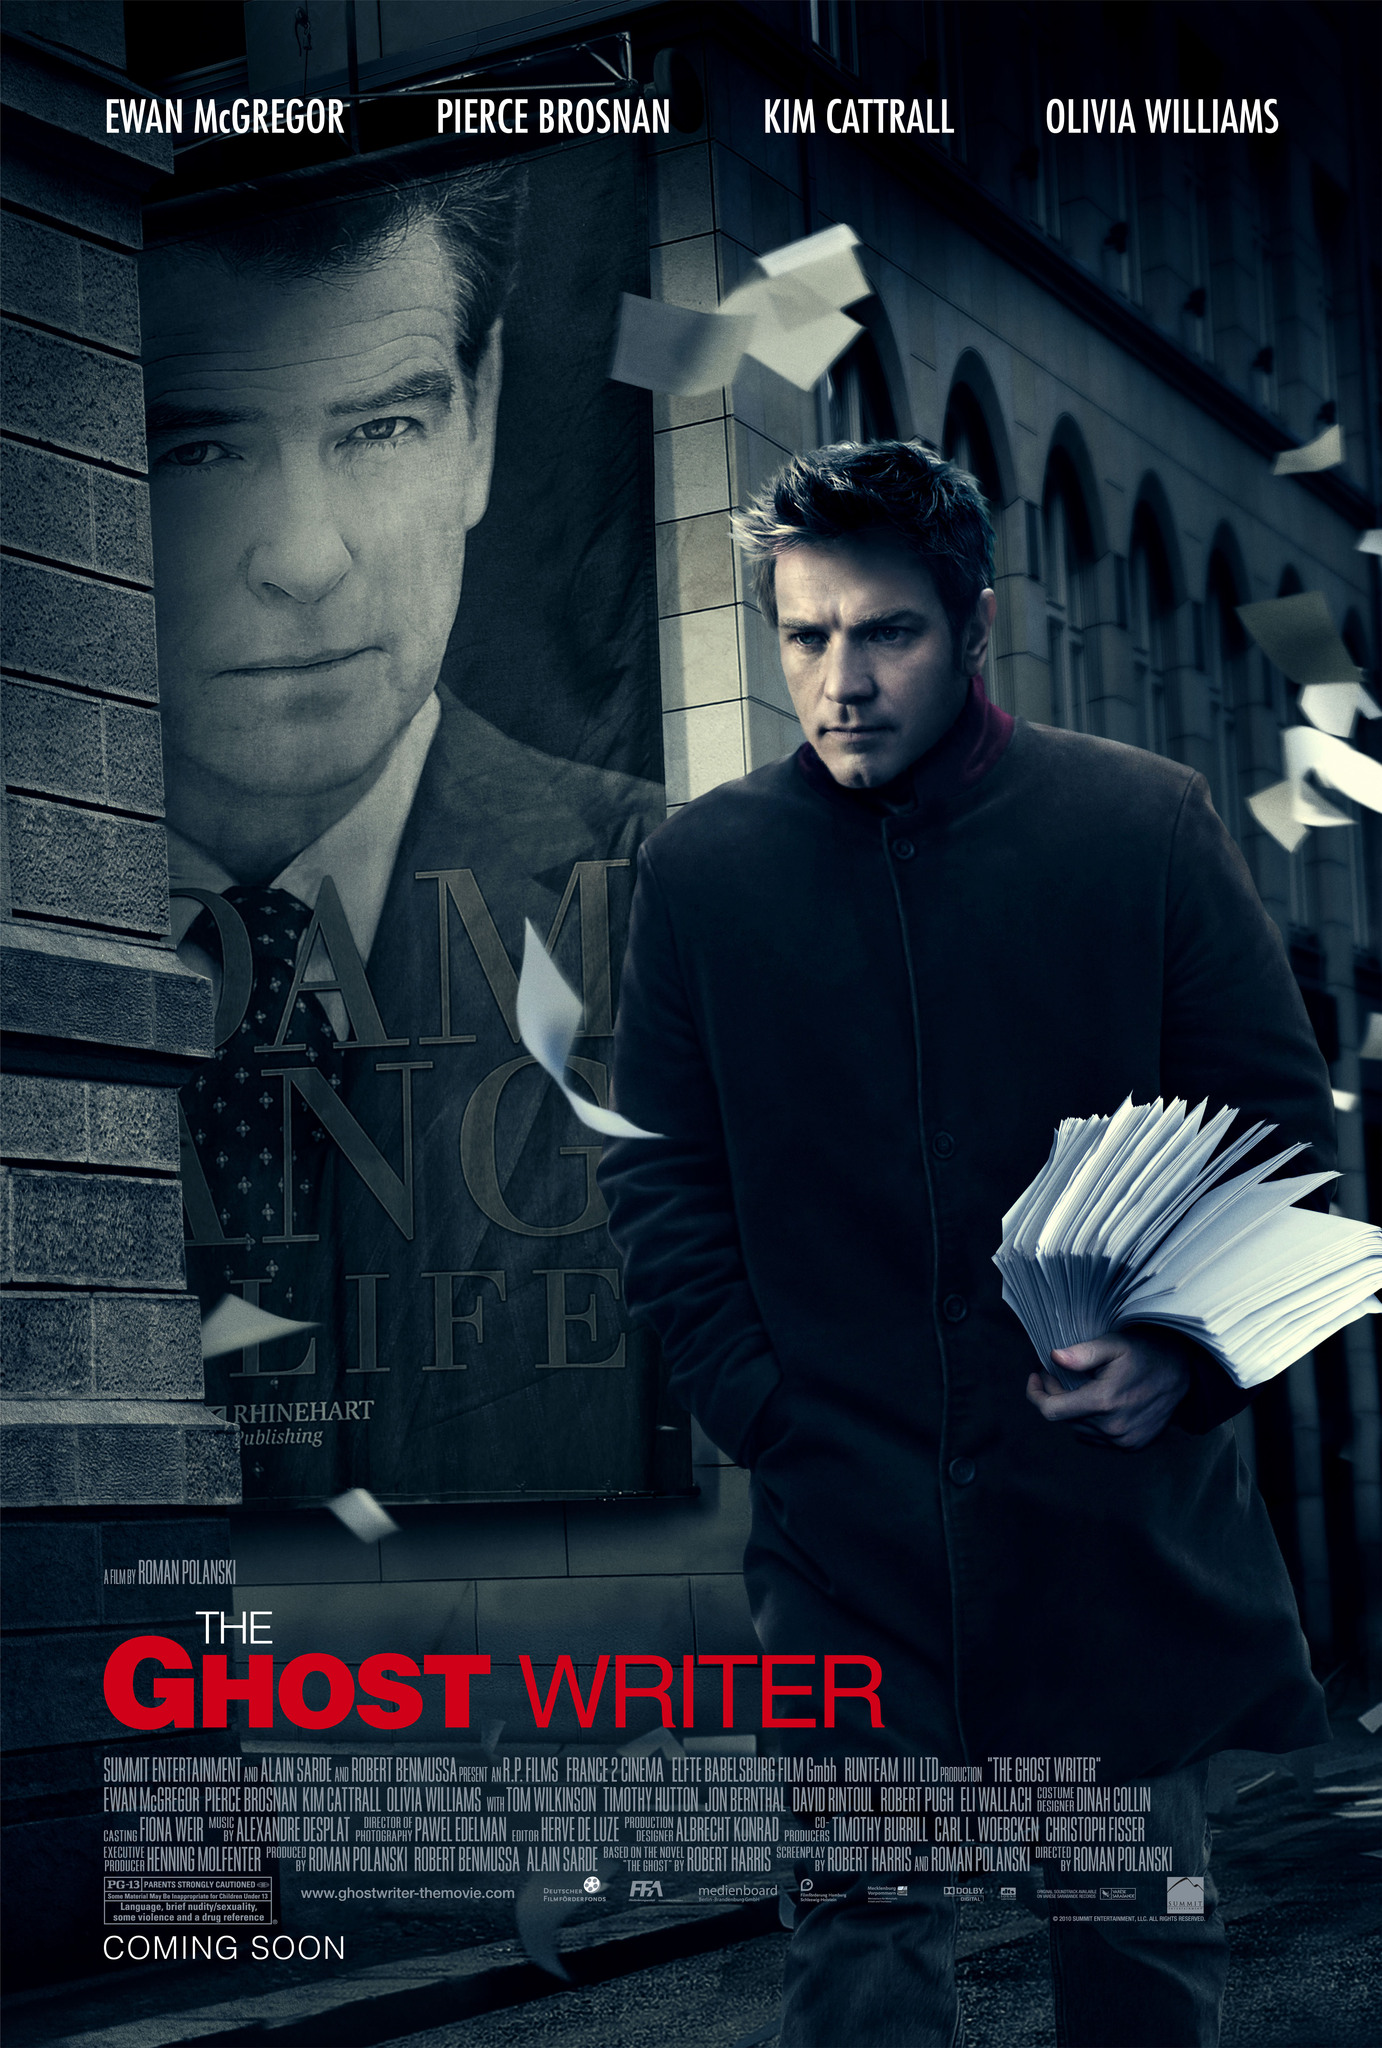 The Ghost Writer (2010) - Directed by: Roman PolanskiStarring: Ewan McGregor, John Bernthal, Pierce Brosnan, Olivia Williams, Tom Wilkinson, Jim BelushiRated: PG-13 for Language, Brief Nudity/Sexuality, Some ViolenceRunning Time: 2 h 8 mTMM Score: 3.5 stars out of 5STRENGTHS: Writing, Directing, ActingWEAKNESSES: Pacing, Coincidental Moments